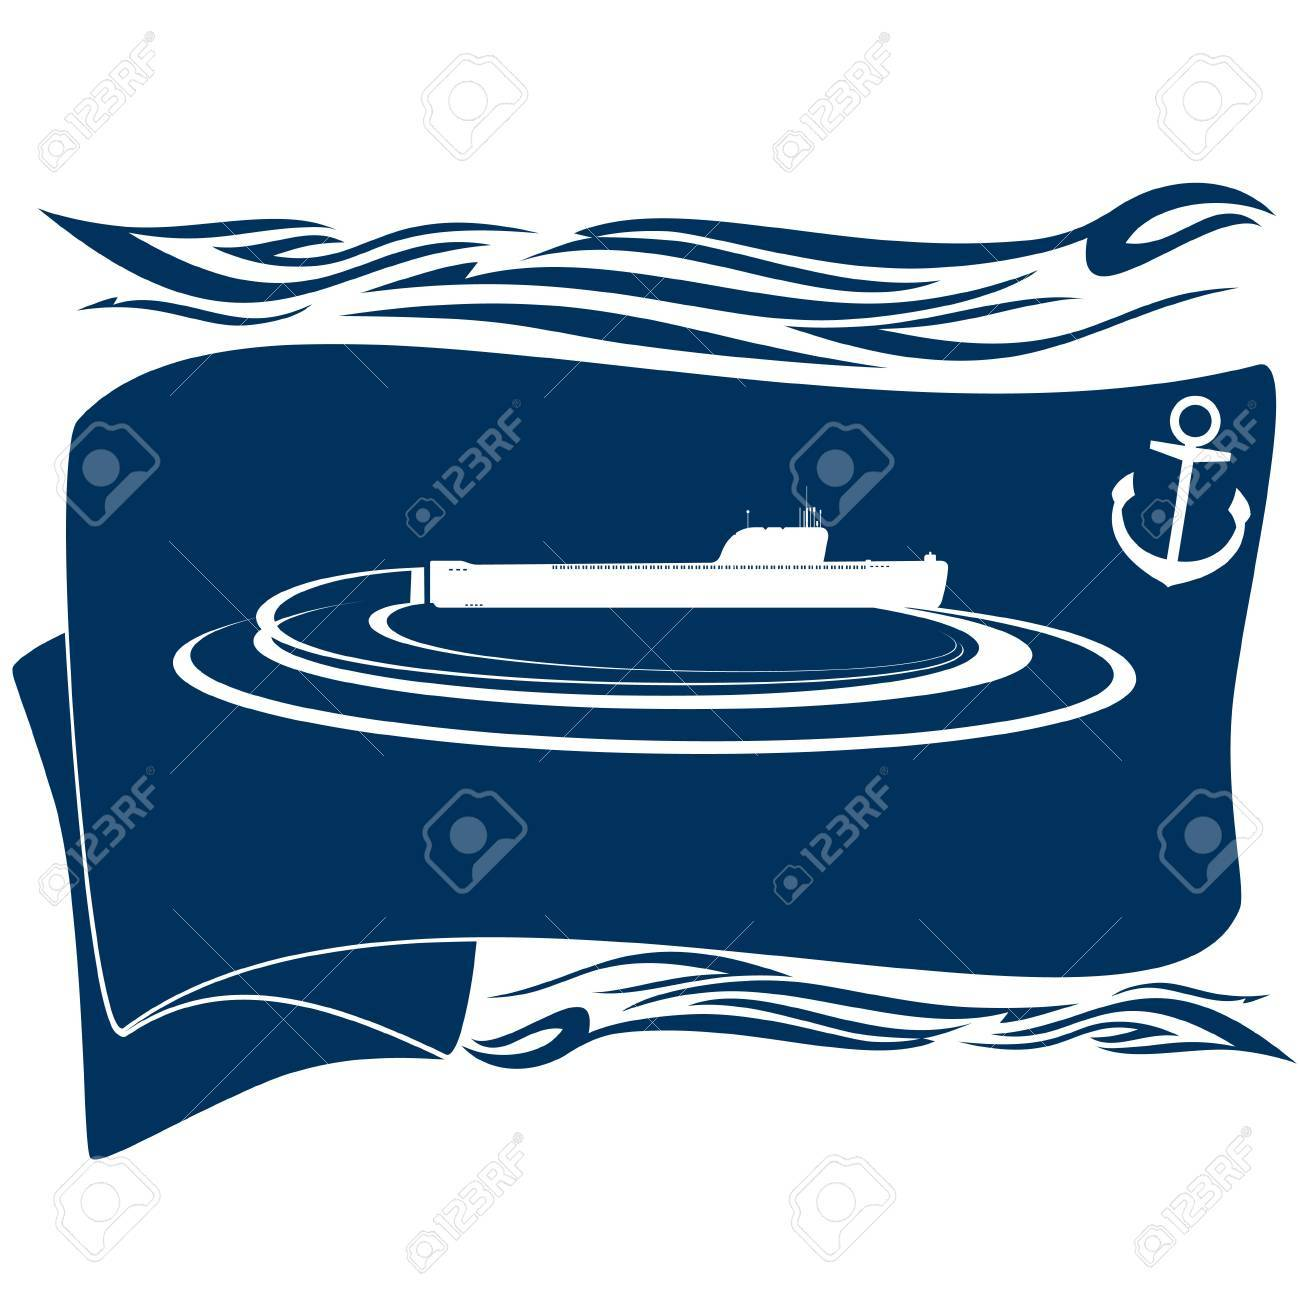 Navy. Flag with an anchor and a submarine. Illustration on white background. Stock Vector - 16697188